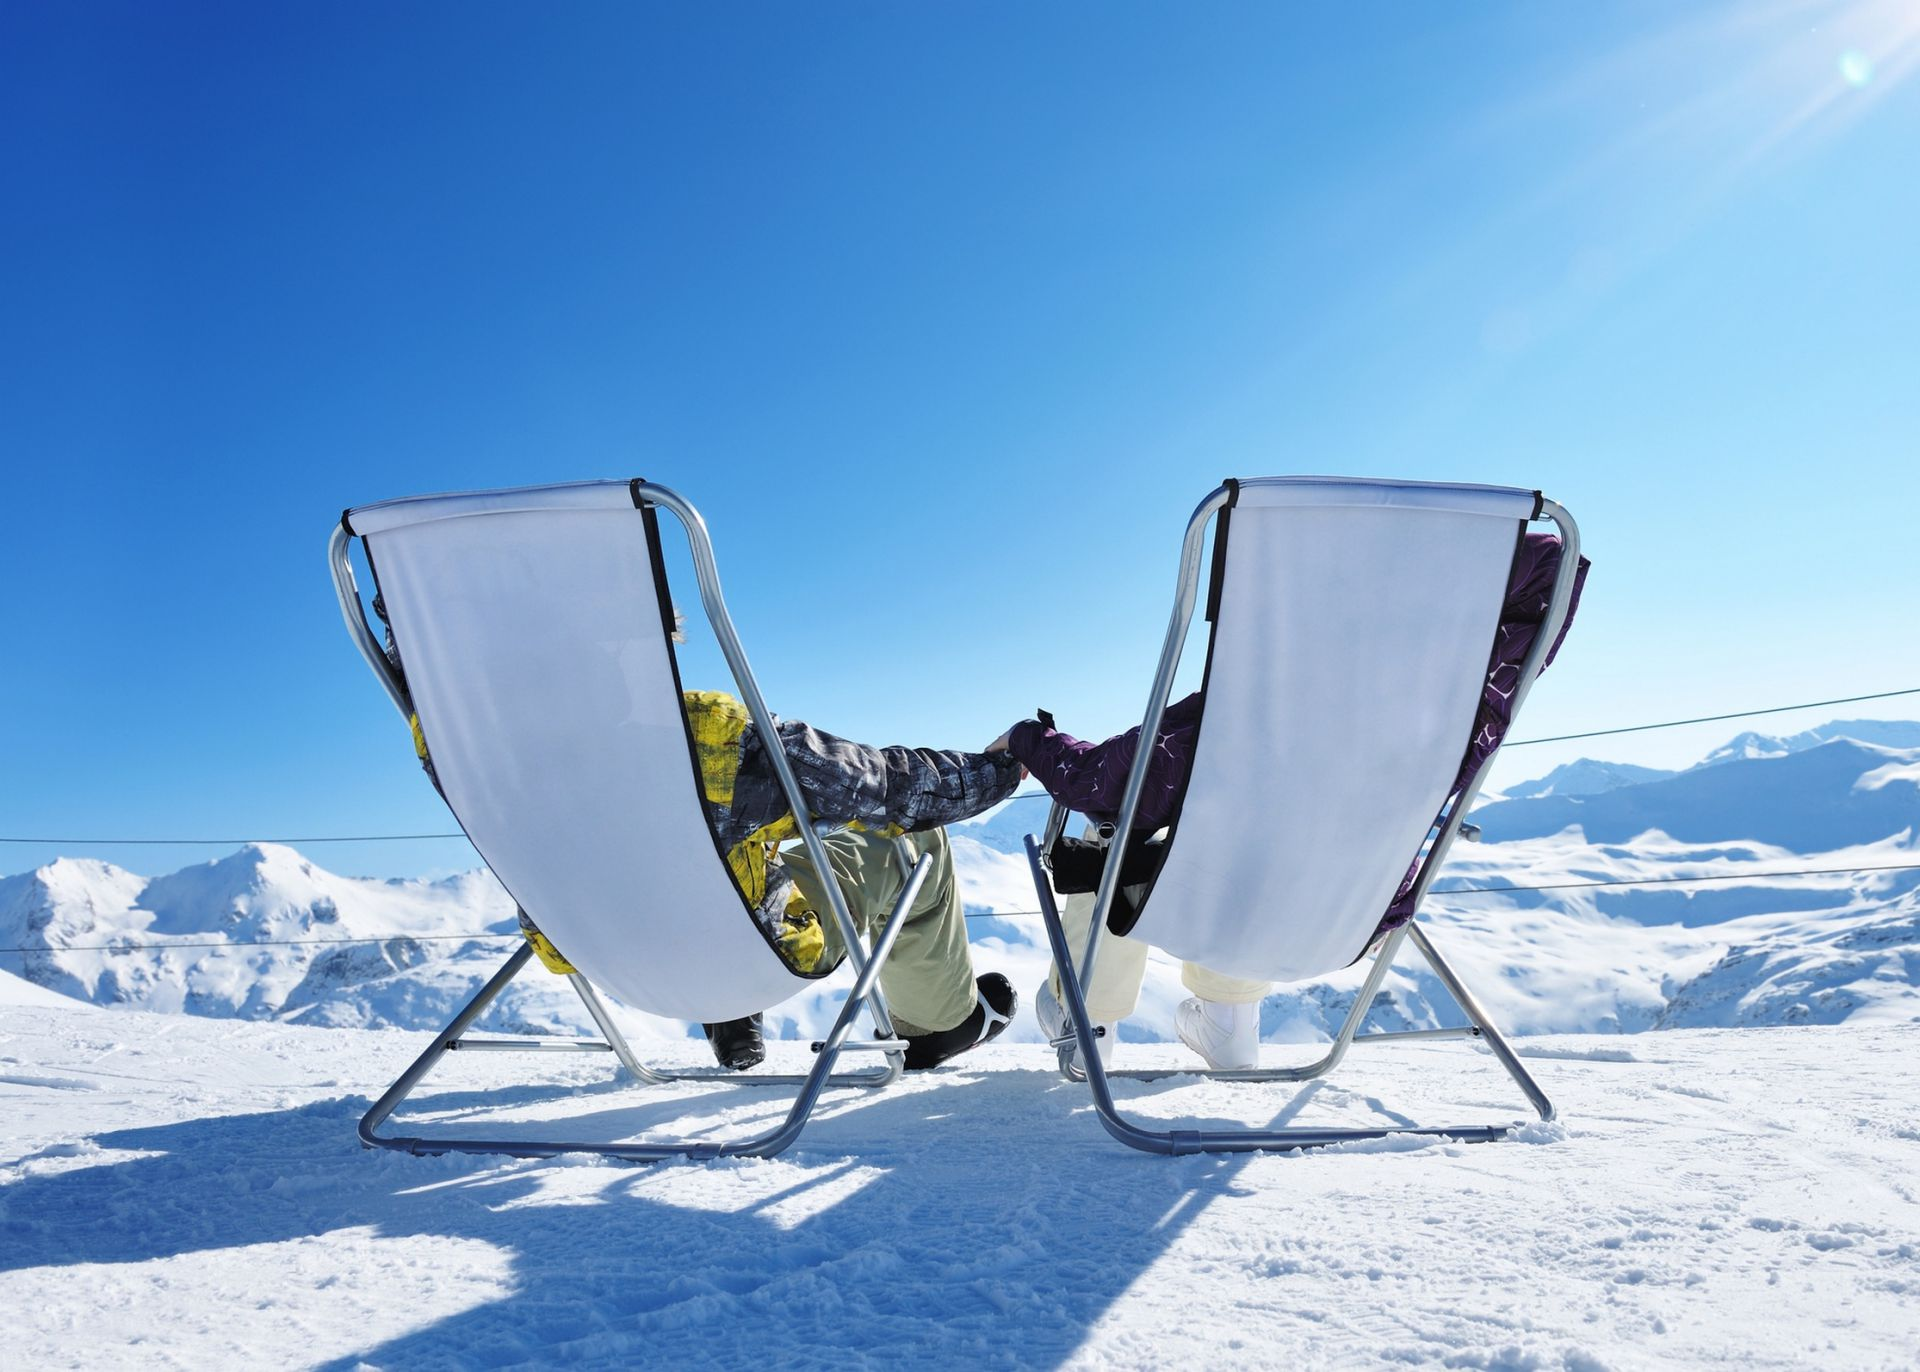 Image: Skiing, relaxation and culinary delights